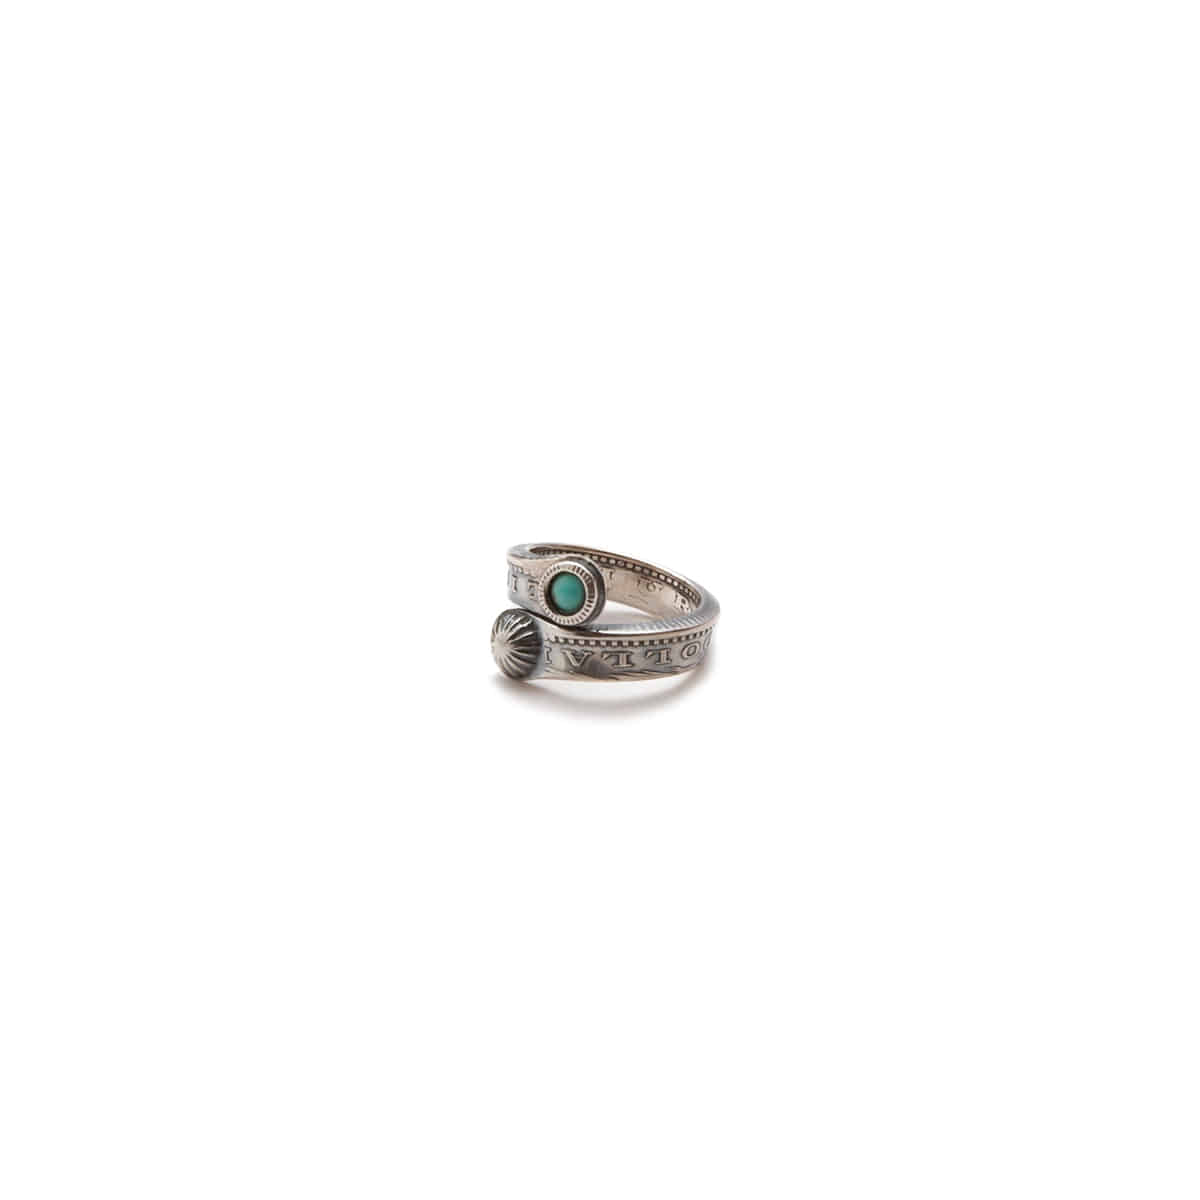 [NORTH WORKS] MORGAN DOLLAR TWIST RING SLIM(TURQUOISE/MINI CONCHA) 'N-205'